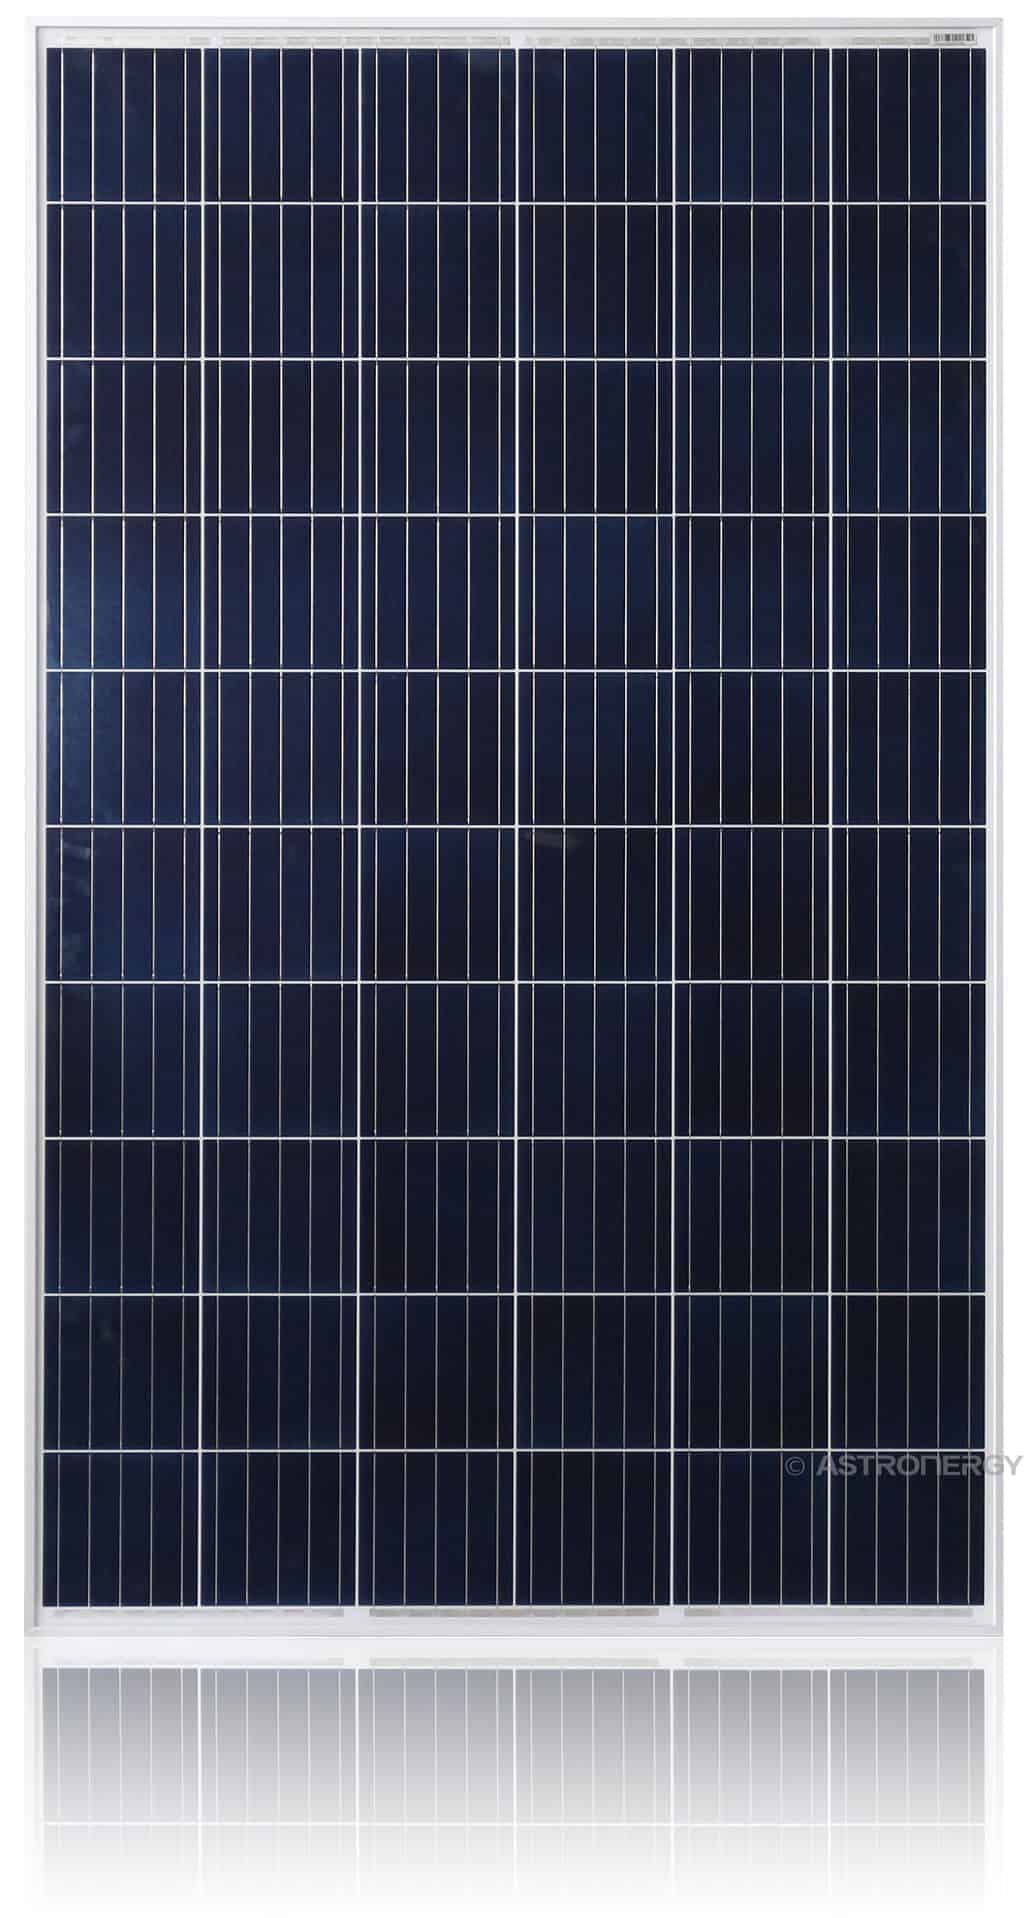 108 Kw Watt Telecom Off Grid Dc 24 48v Wholesale Solar Wiring Diagram Of A Tie Power System Astronergy Chsm6610p 270 Panel